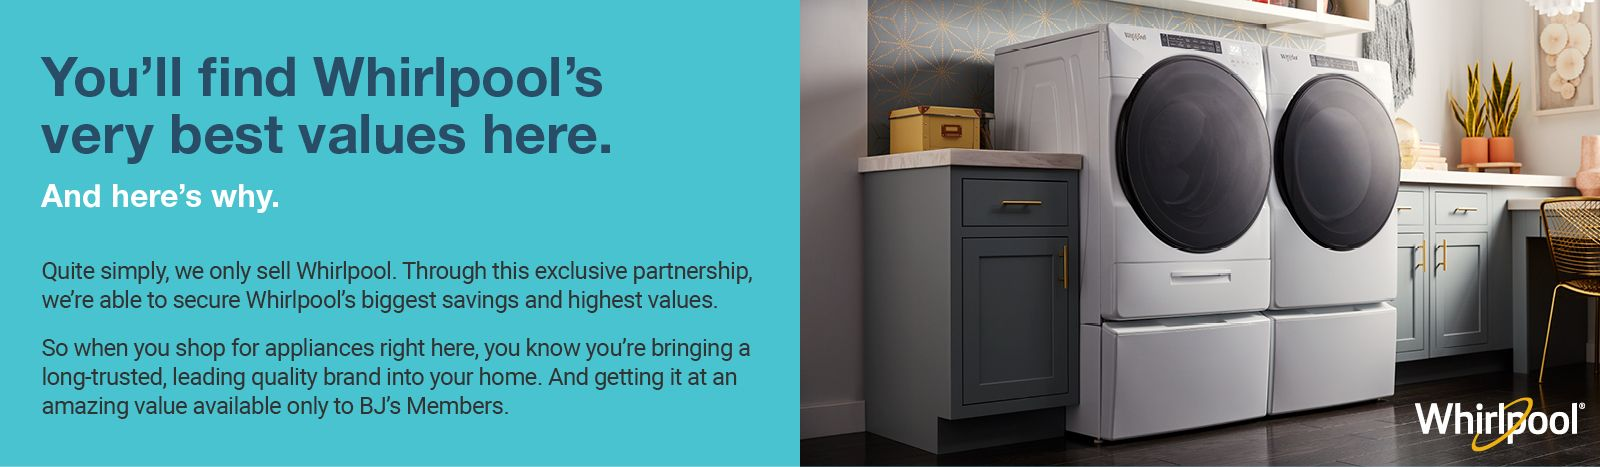 You'll find Whirlpool's very best values here. And here's why. Quite simply, we only sell Whirlpool. Through this exclusive partnership, we're able to secure Whirlpool's biggest savings and highest values.